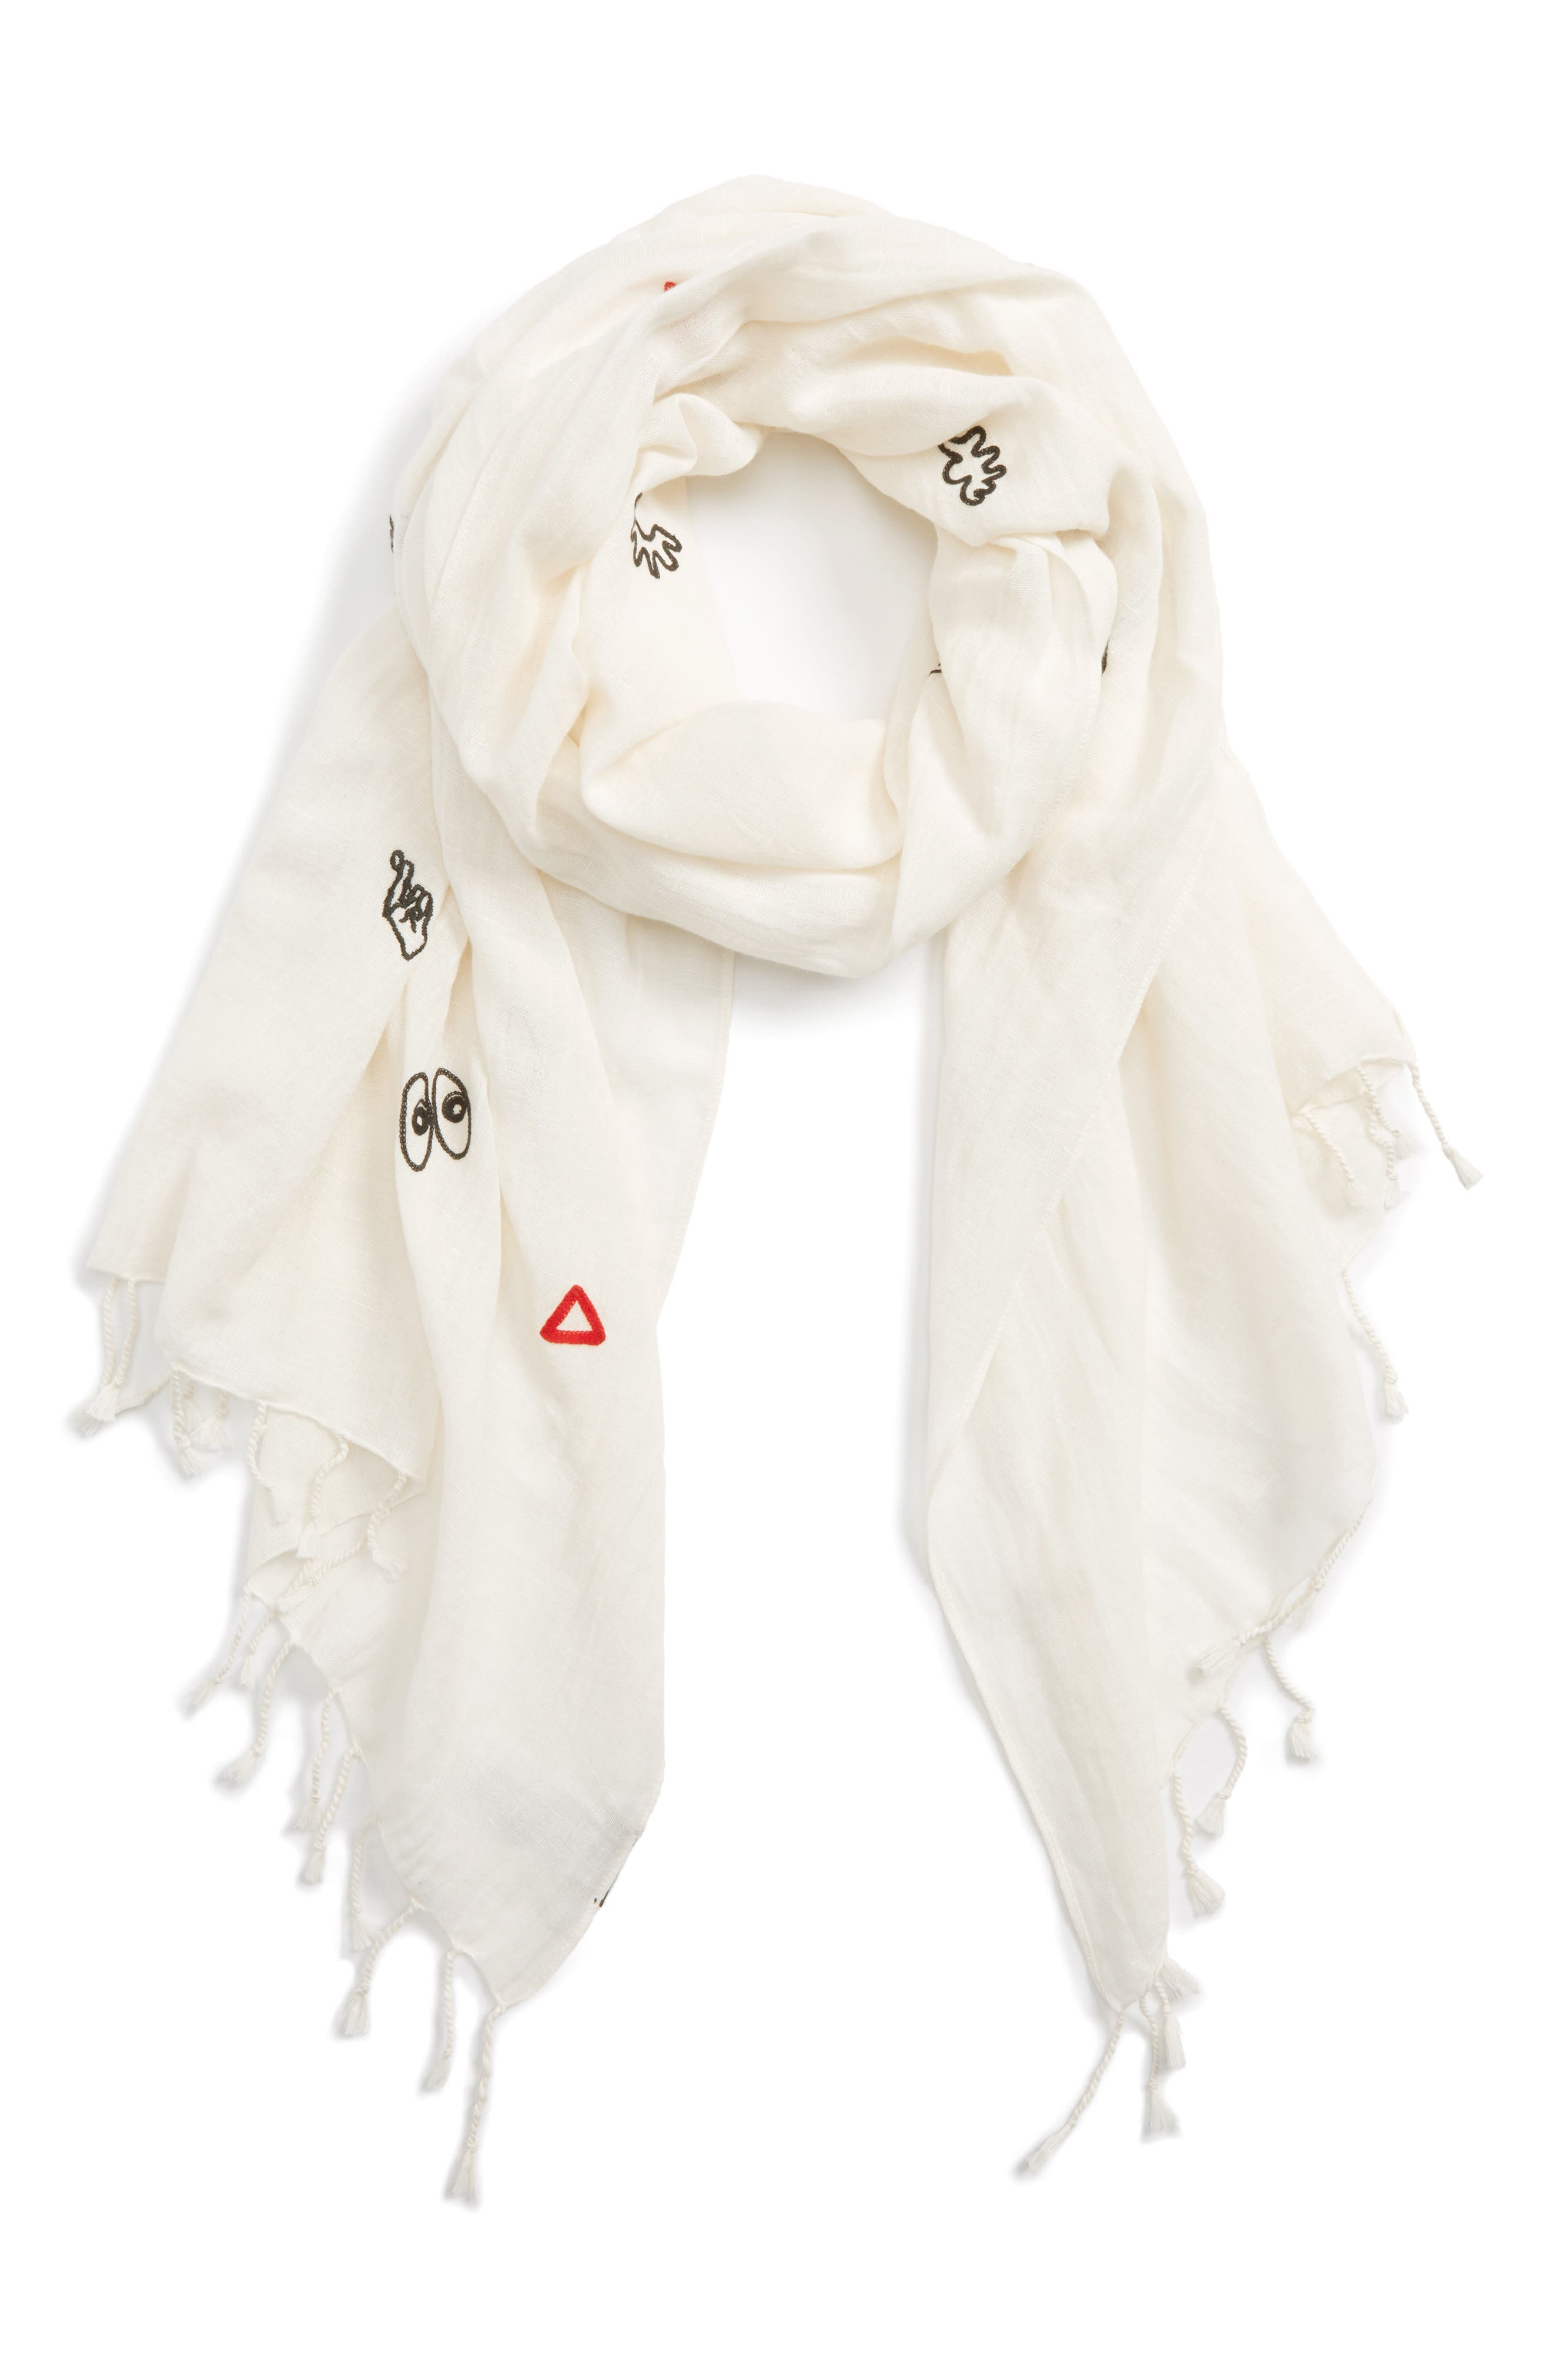 Main Image - Madewell Embroidered Making Faces Scarf